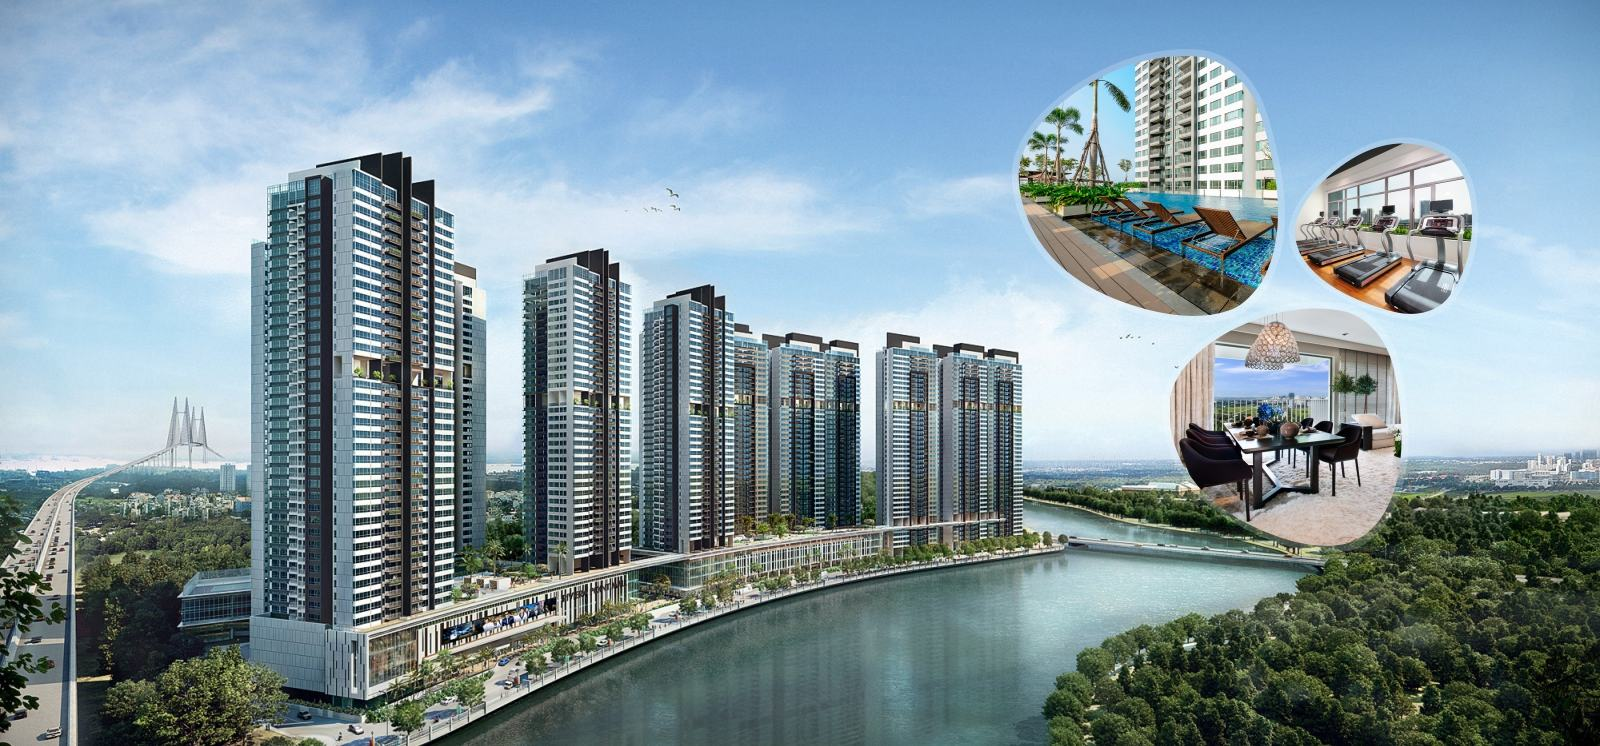 riviera-point-can-ho-cao-cap-ven-song-complete-riverfront-lifestyle